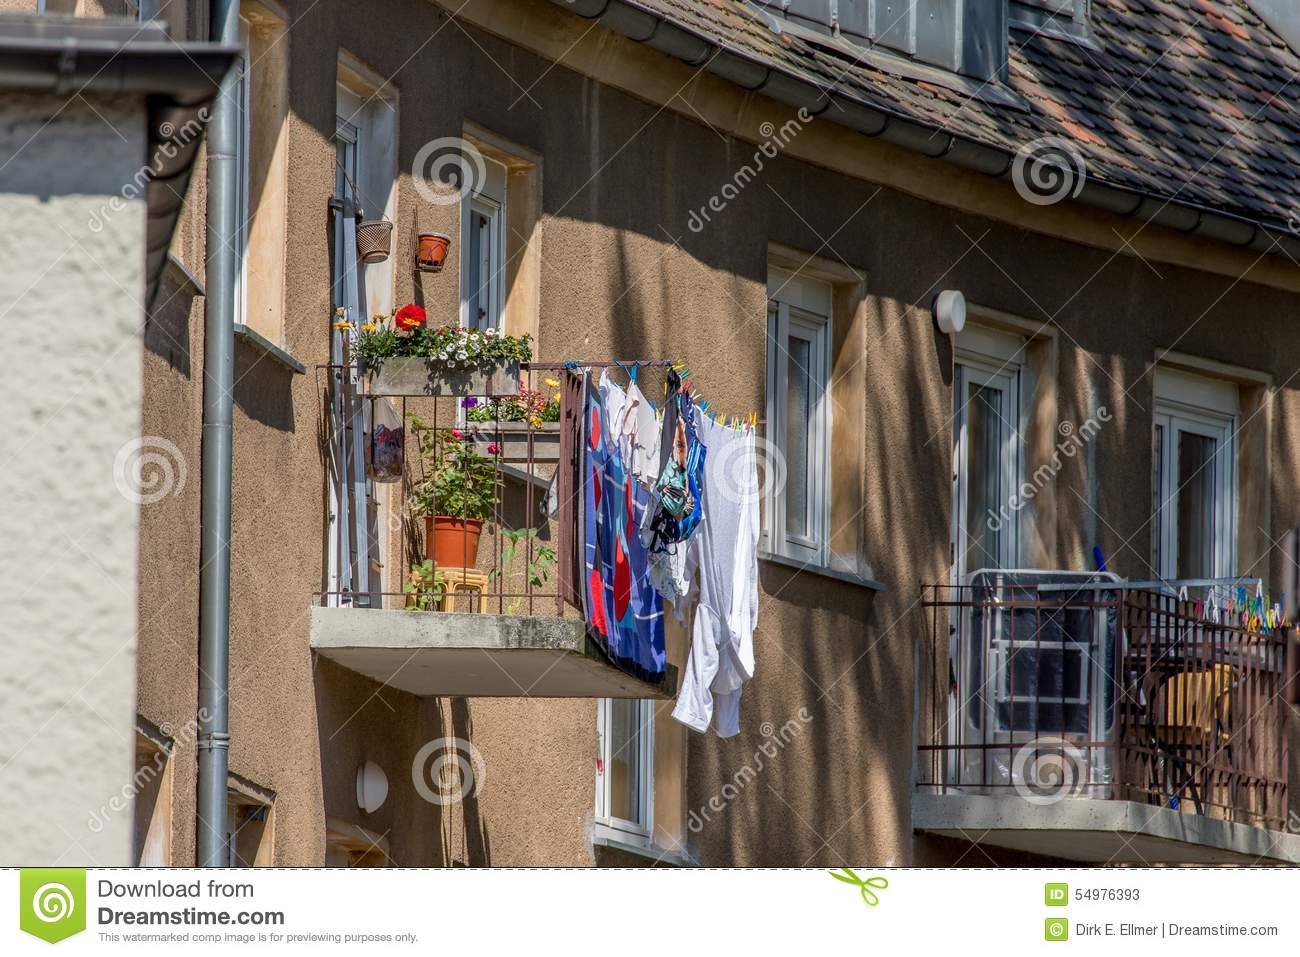 Balcony - clothes drying rack